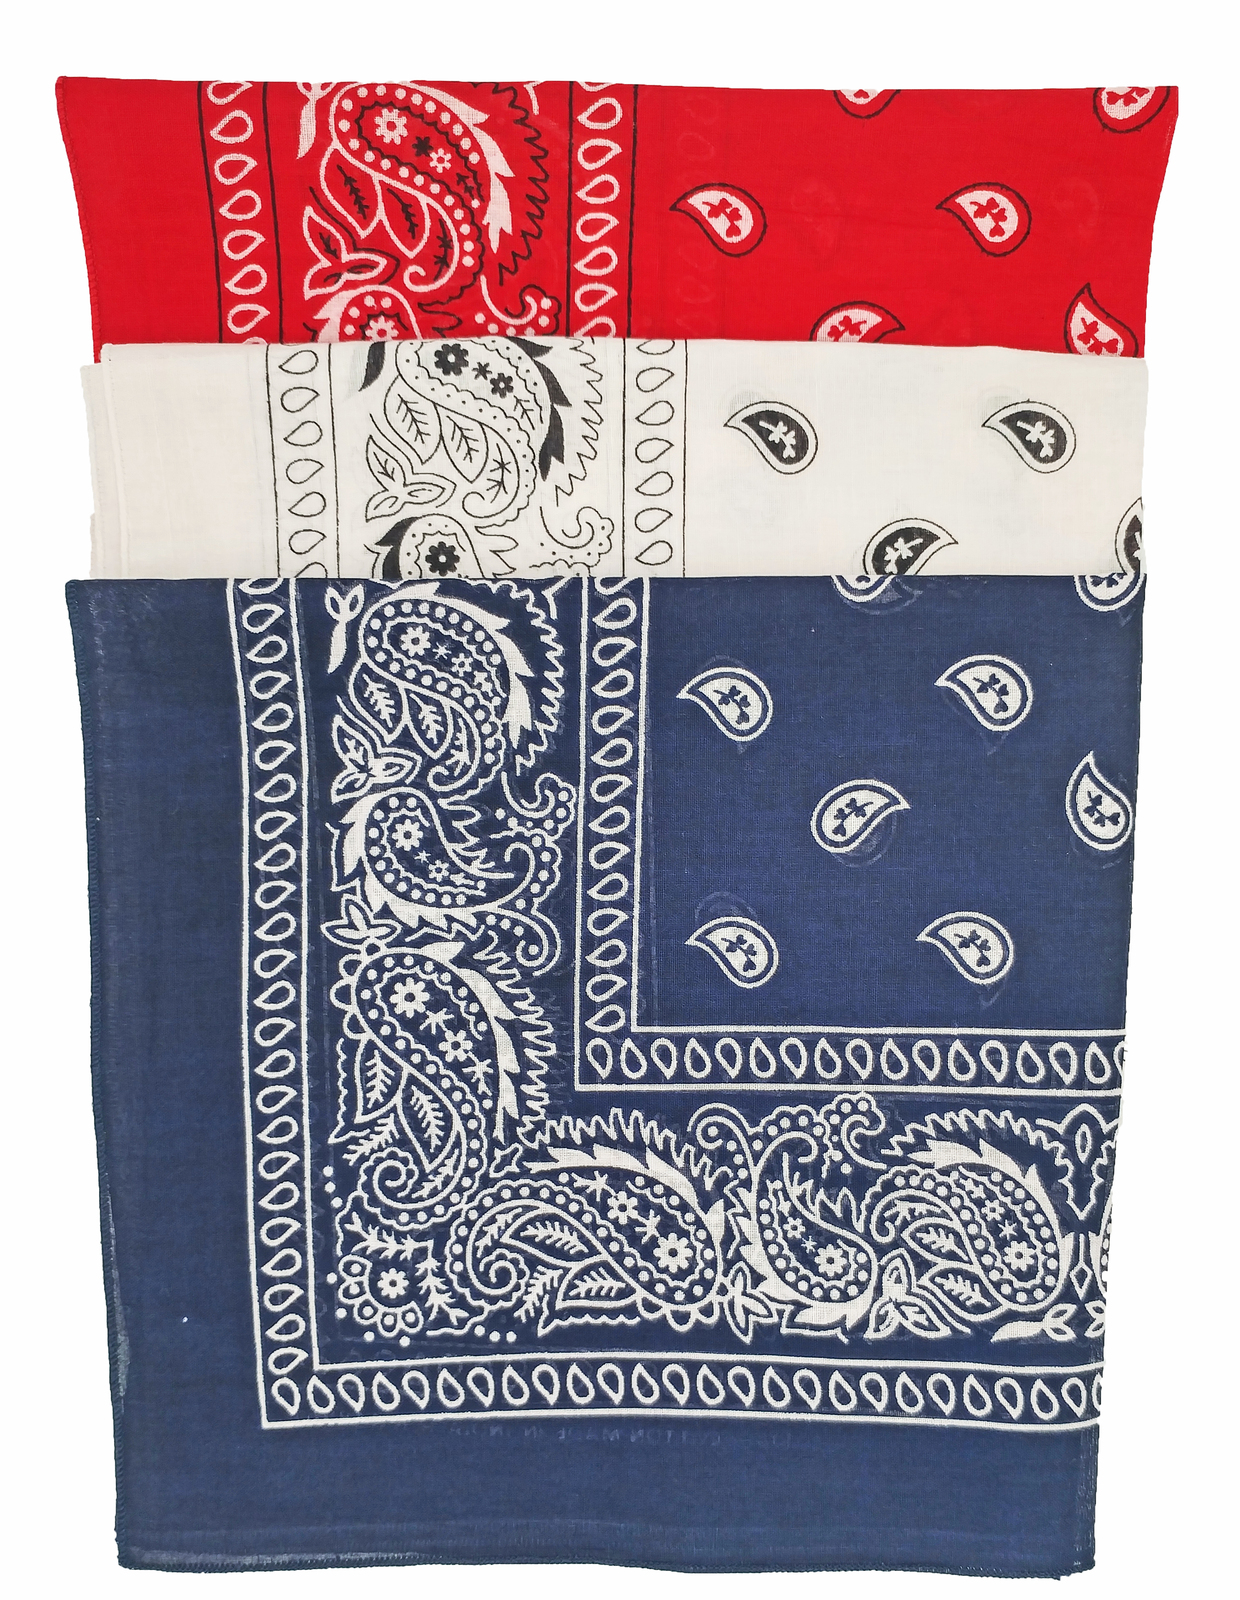 RED WHITE BLUE BANDANNAS Pack of 3 100% cotton in Patriotic American Flag Colors